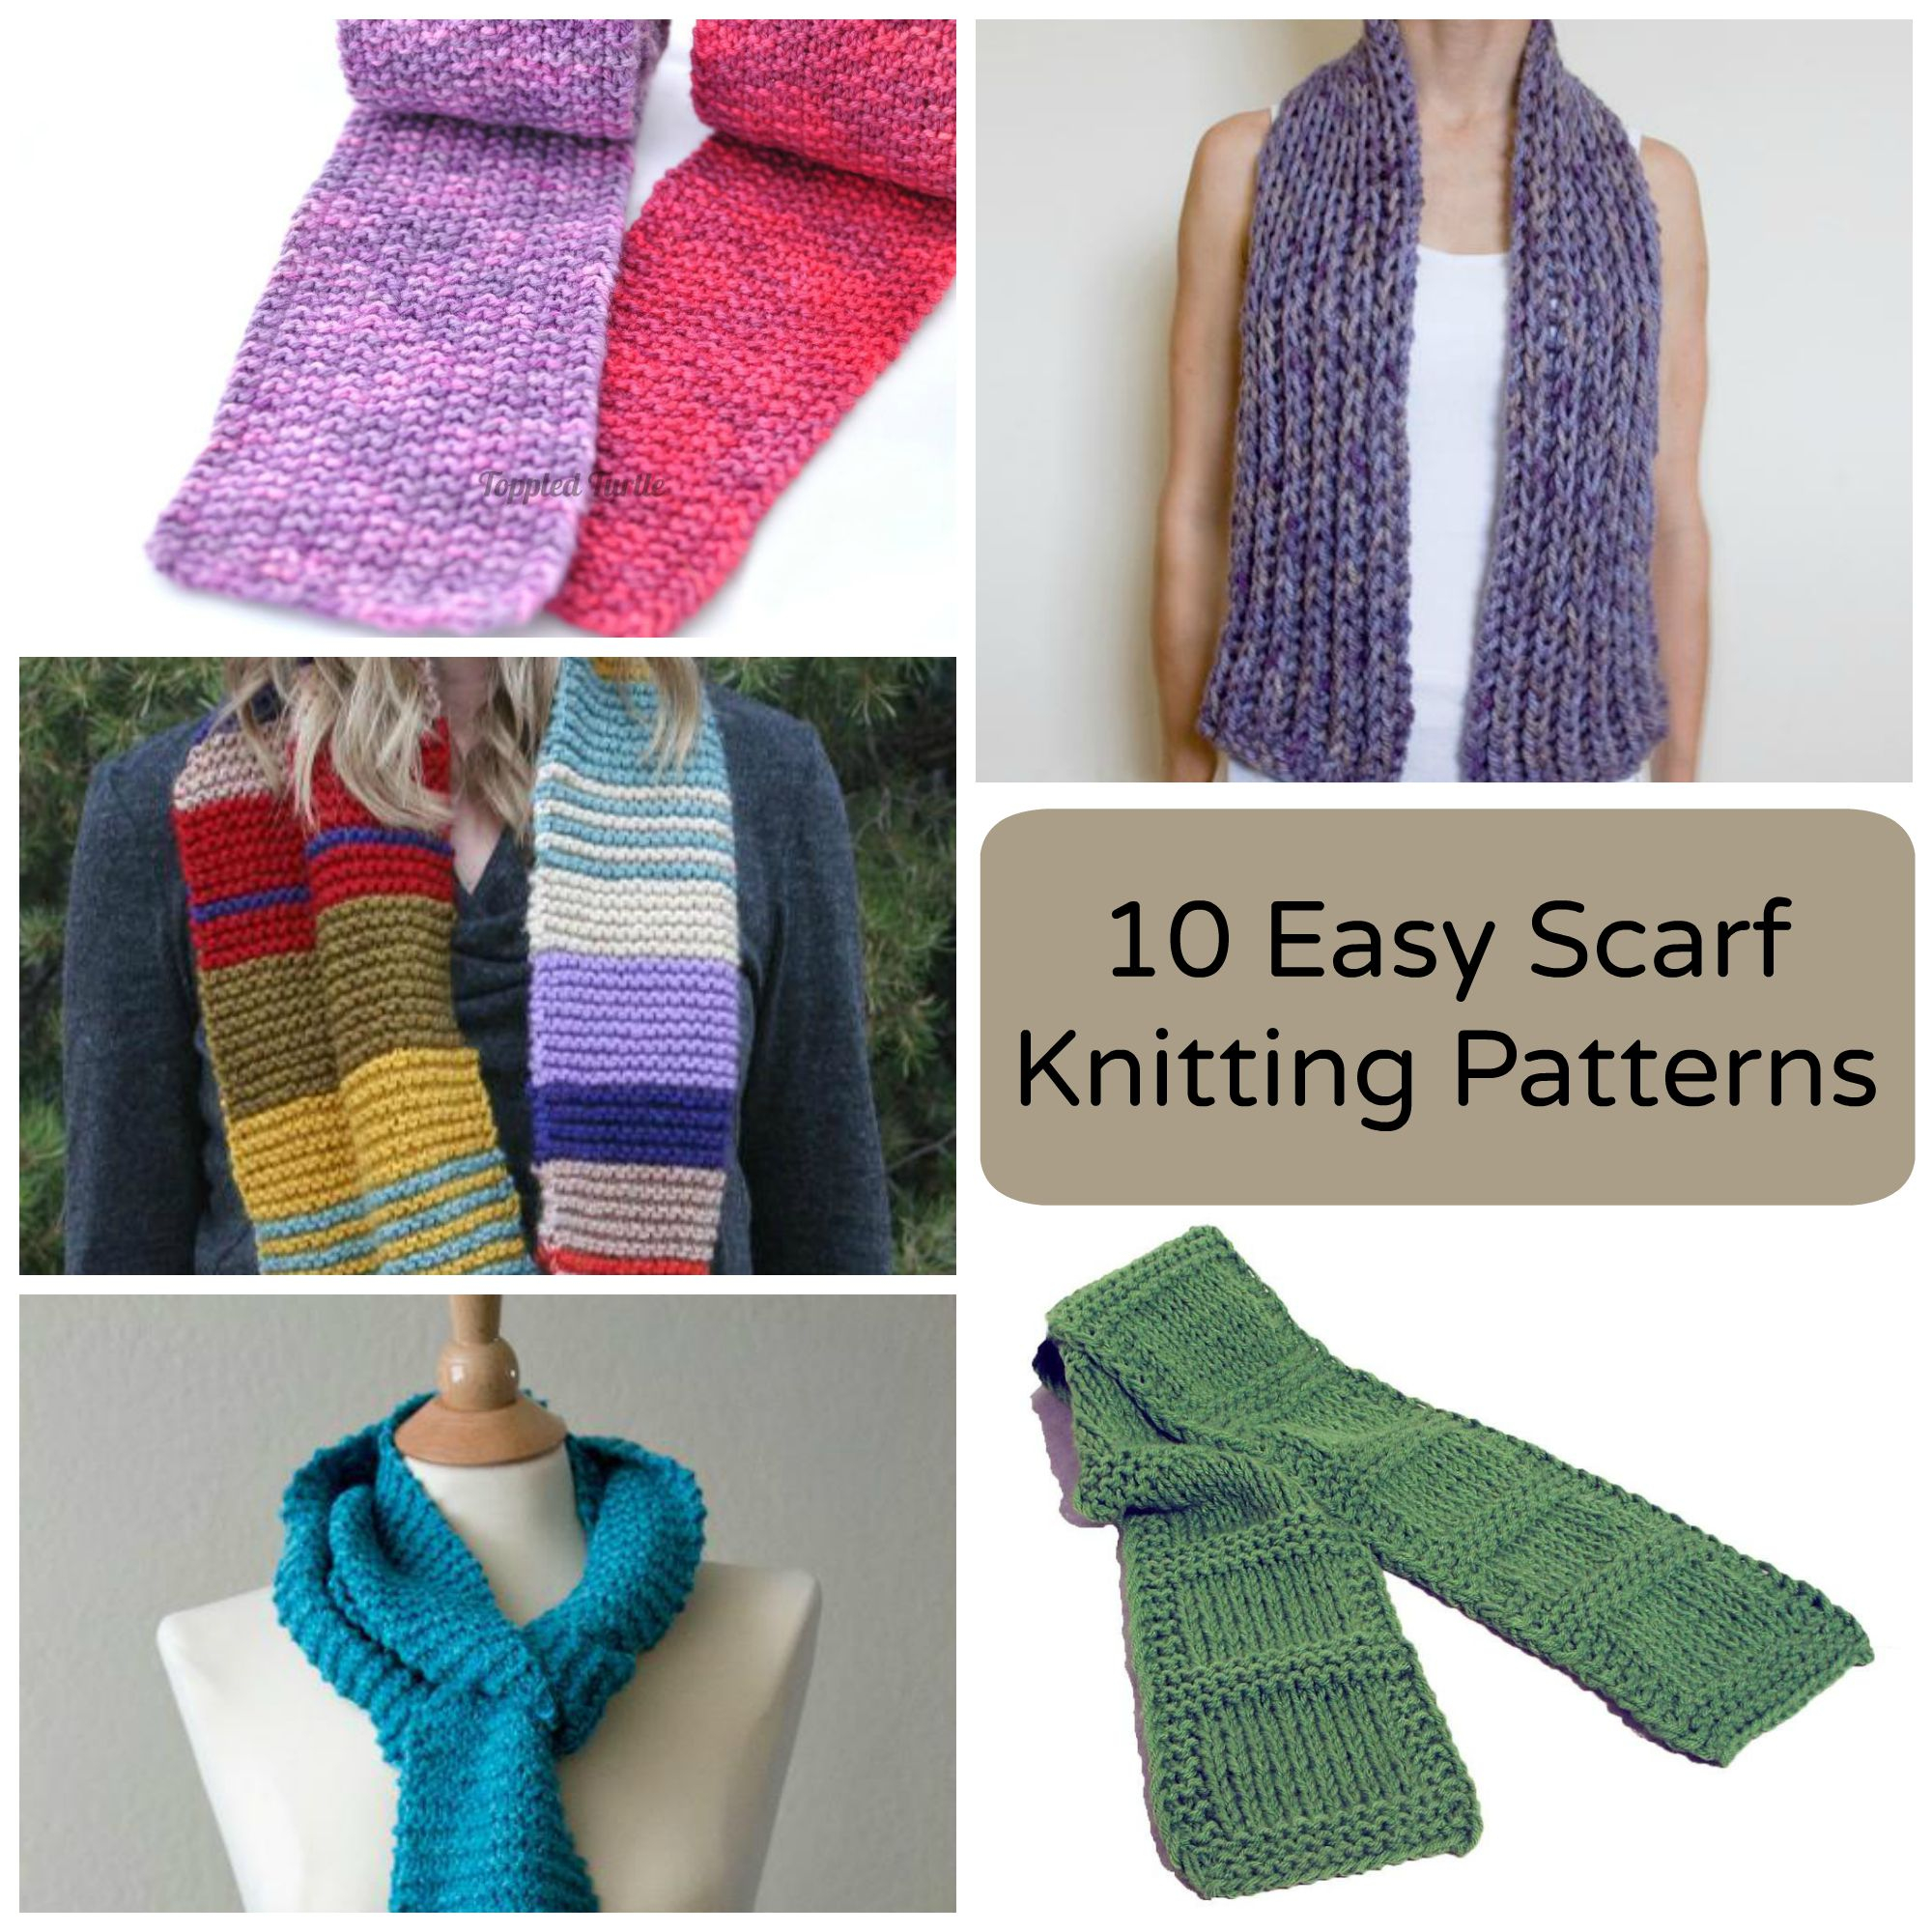 Basic Knitting Scarf Patterns Beginner Knitted Scarf Patterns To Try Out Crochet And Knitting